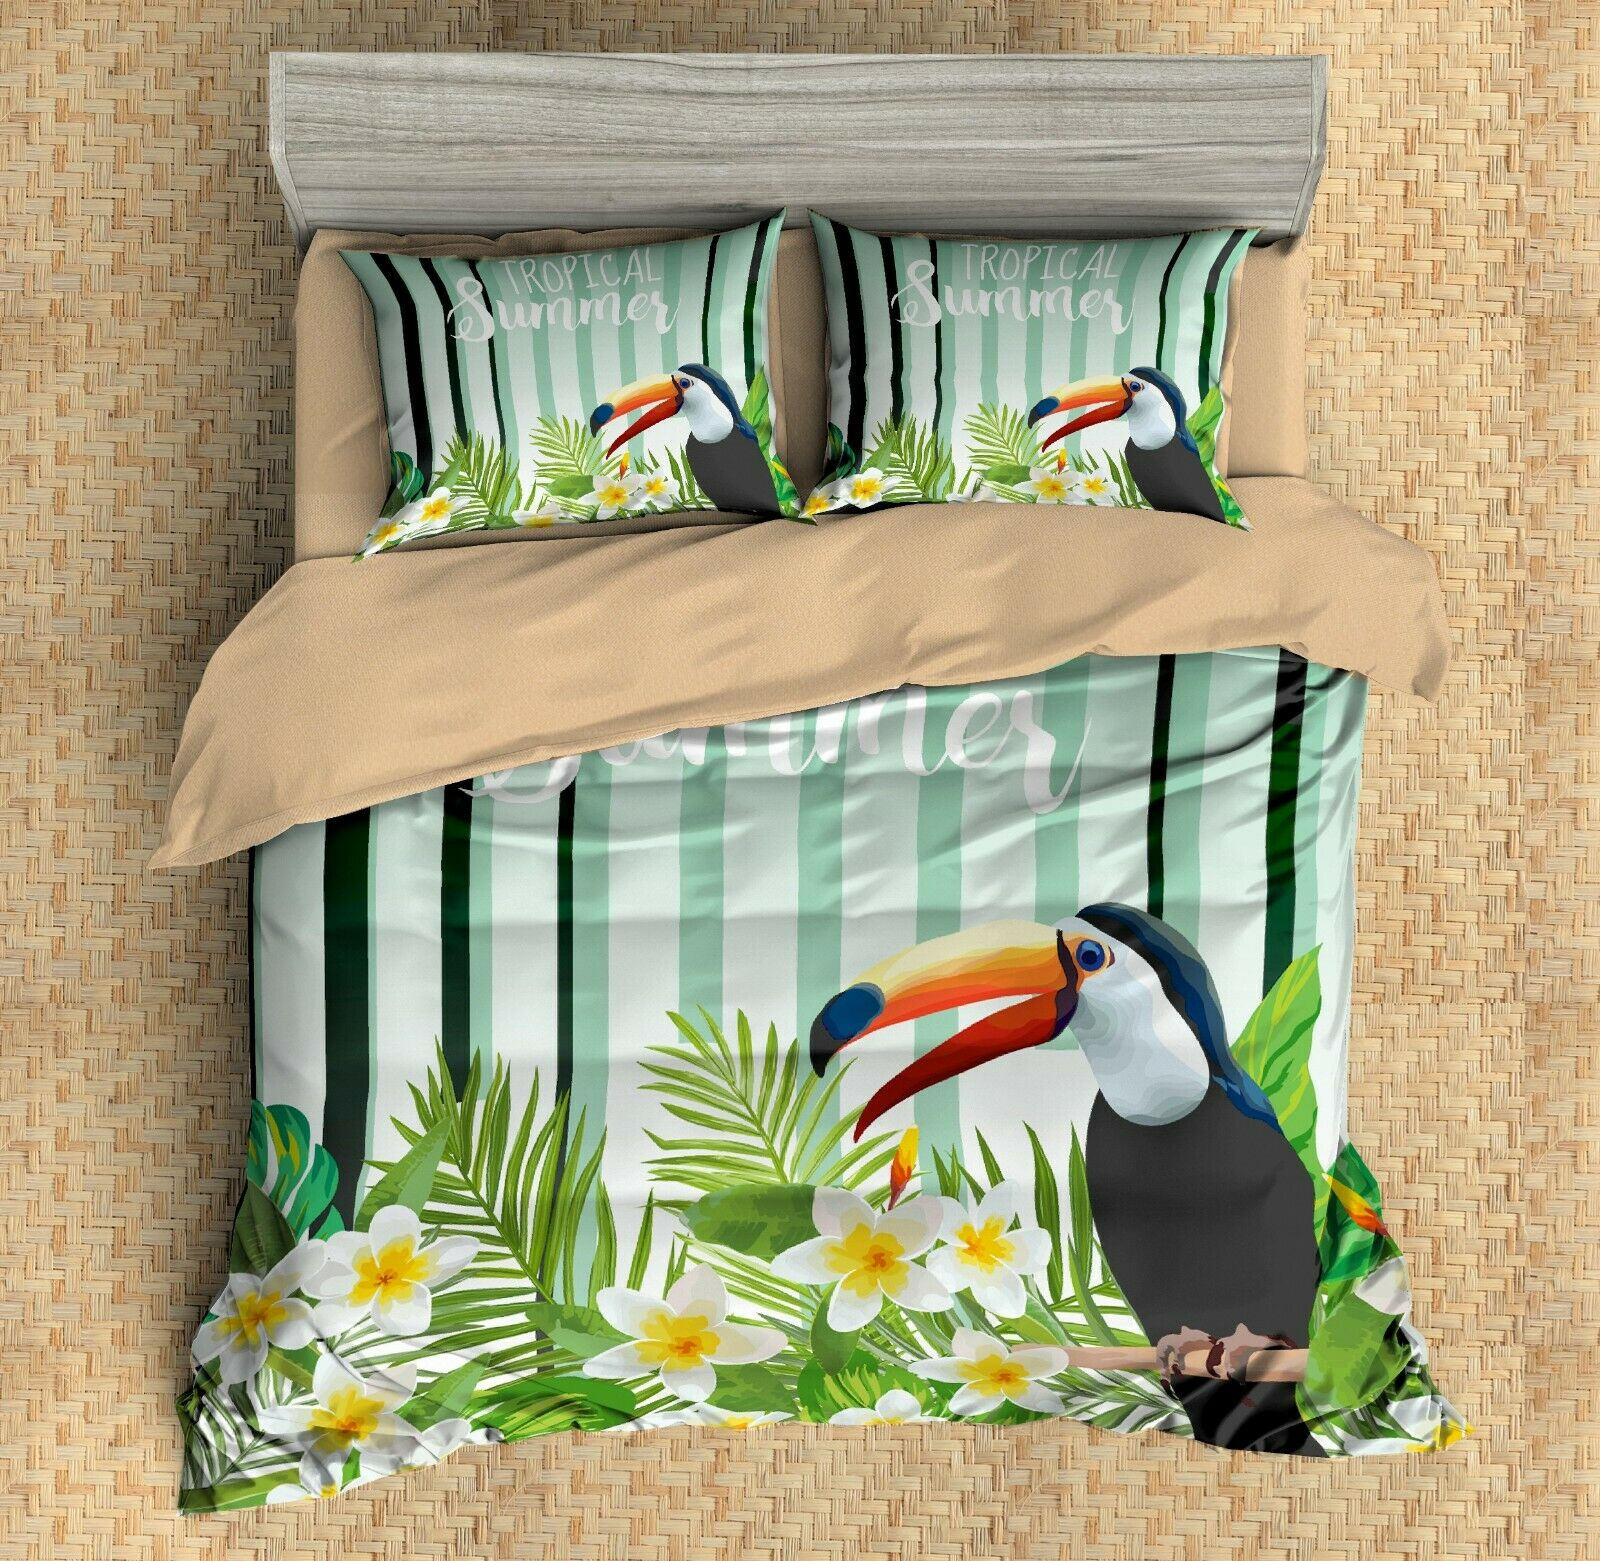 3D Toucan,Floral Quilt Cover Set Bedding Duvet Cover Single Queen King 3pcs 12